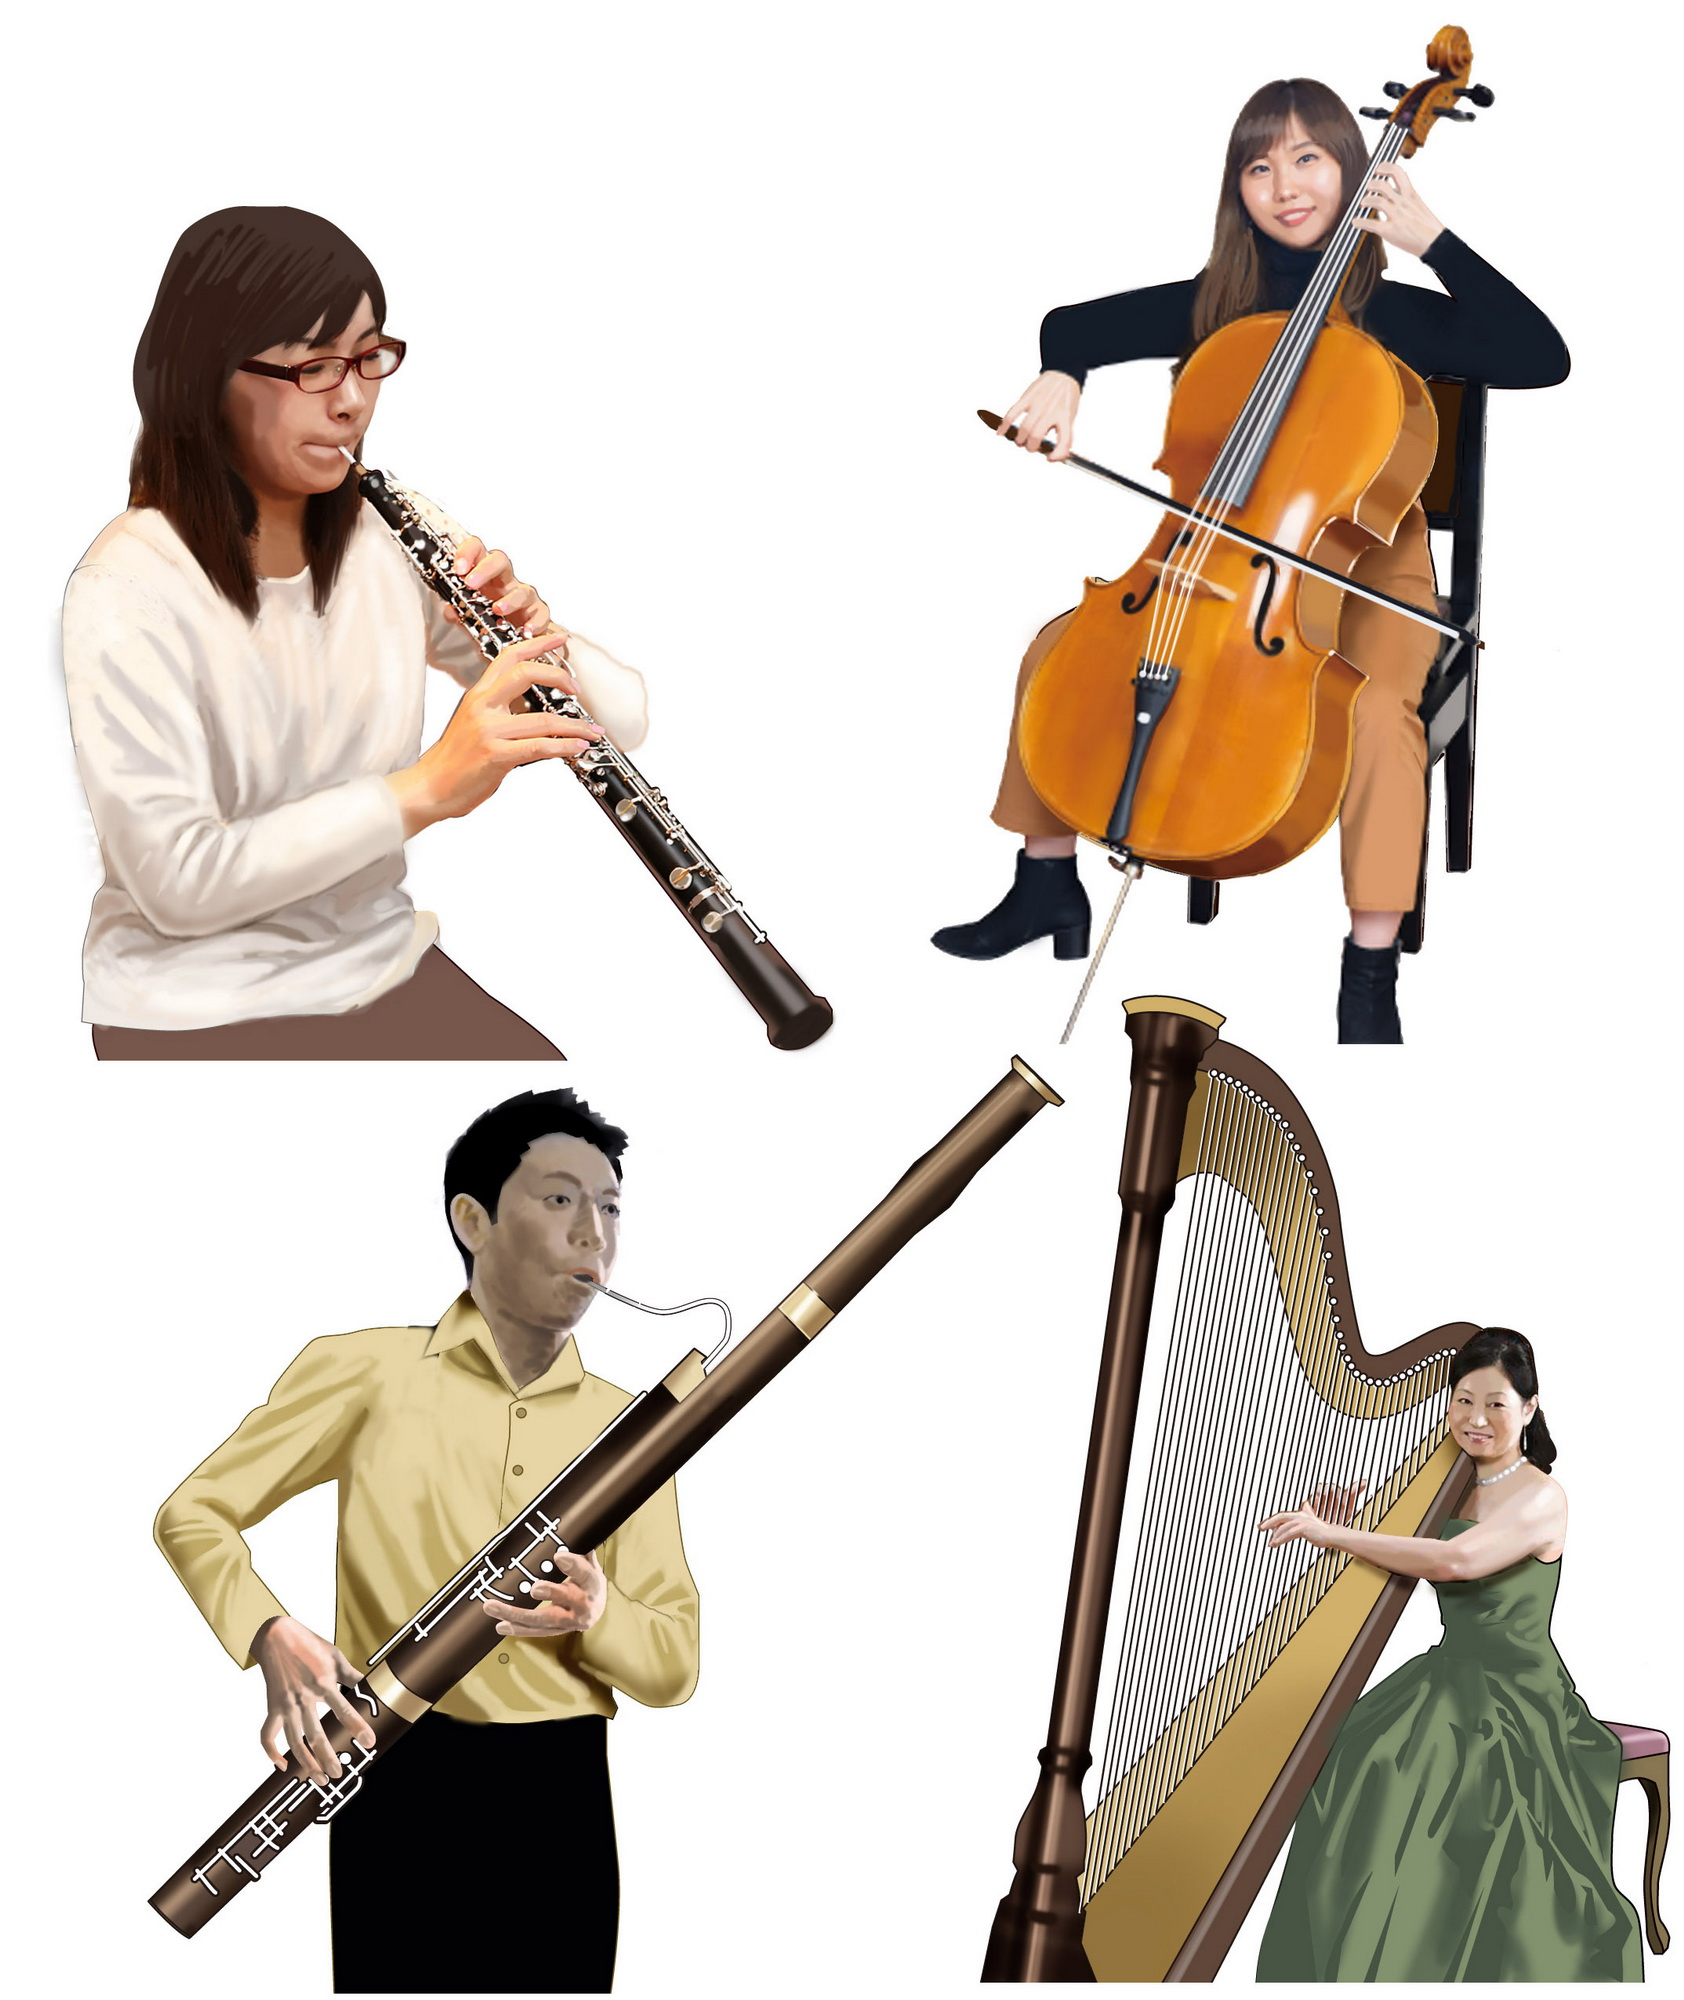 musical instruments02